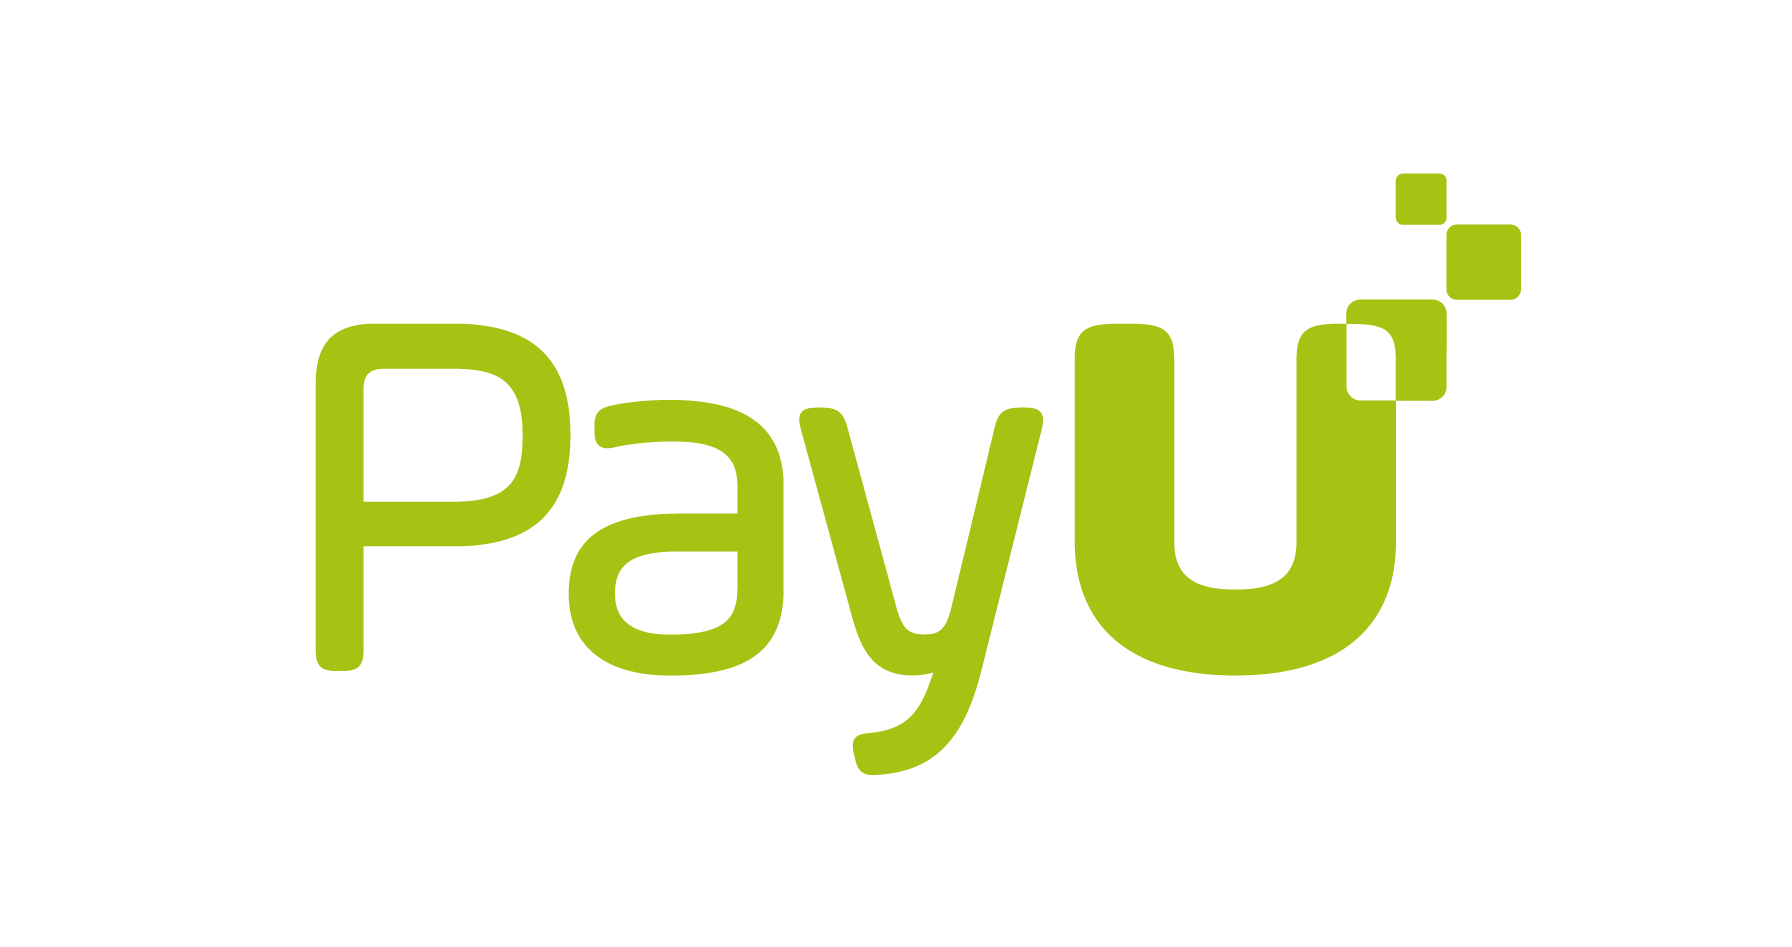 Pay with a quick cash transfer or with by credit card with PayU